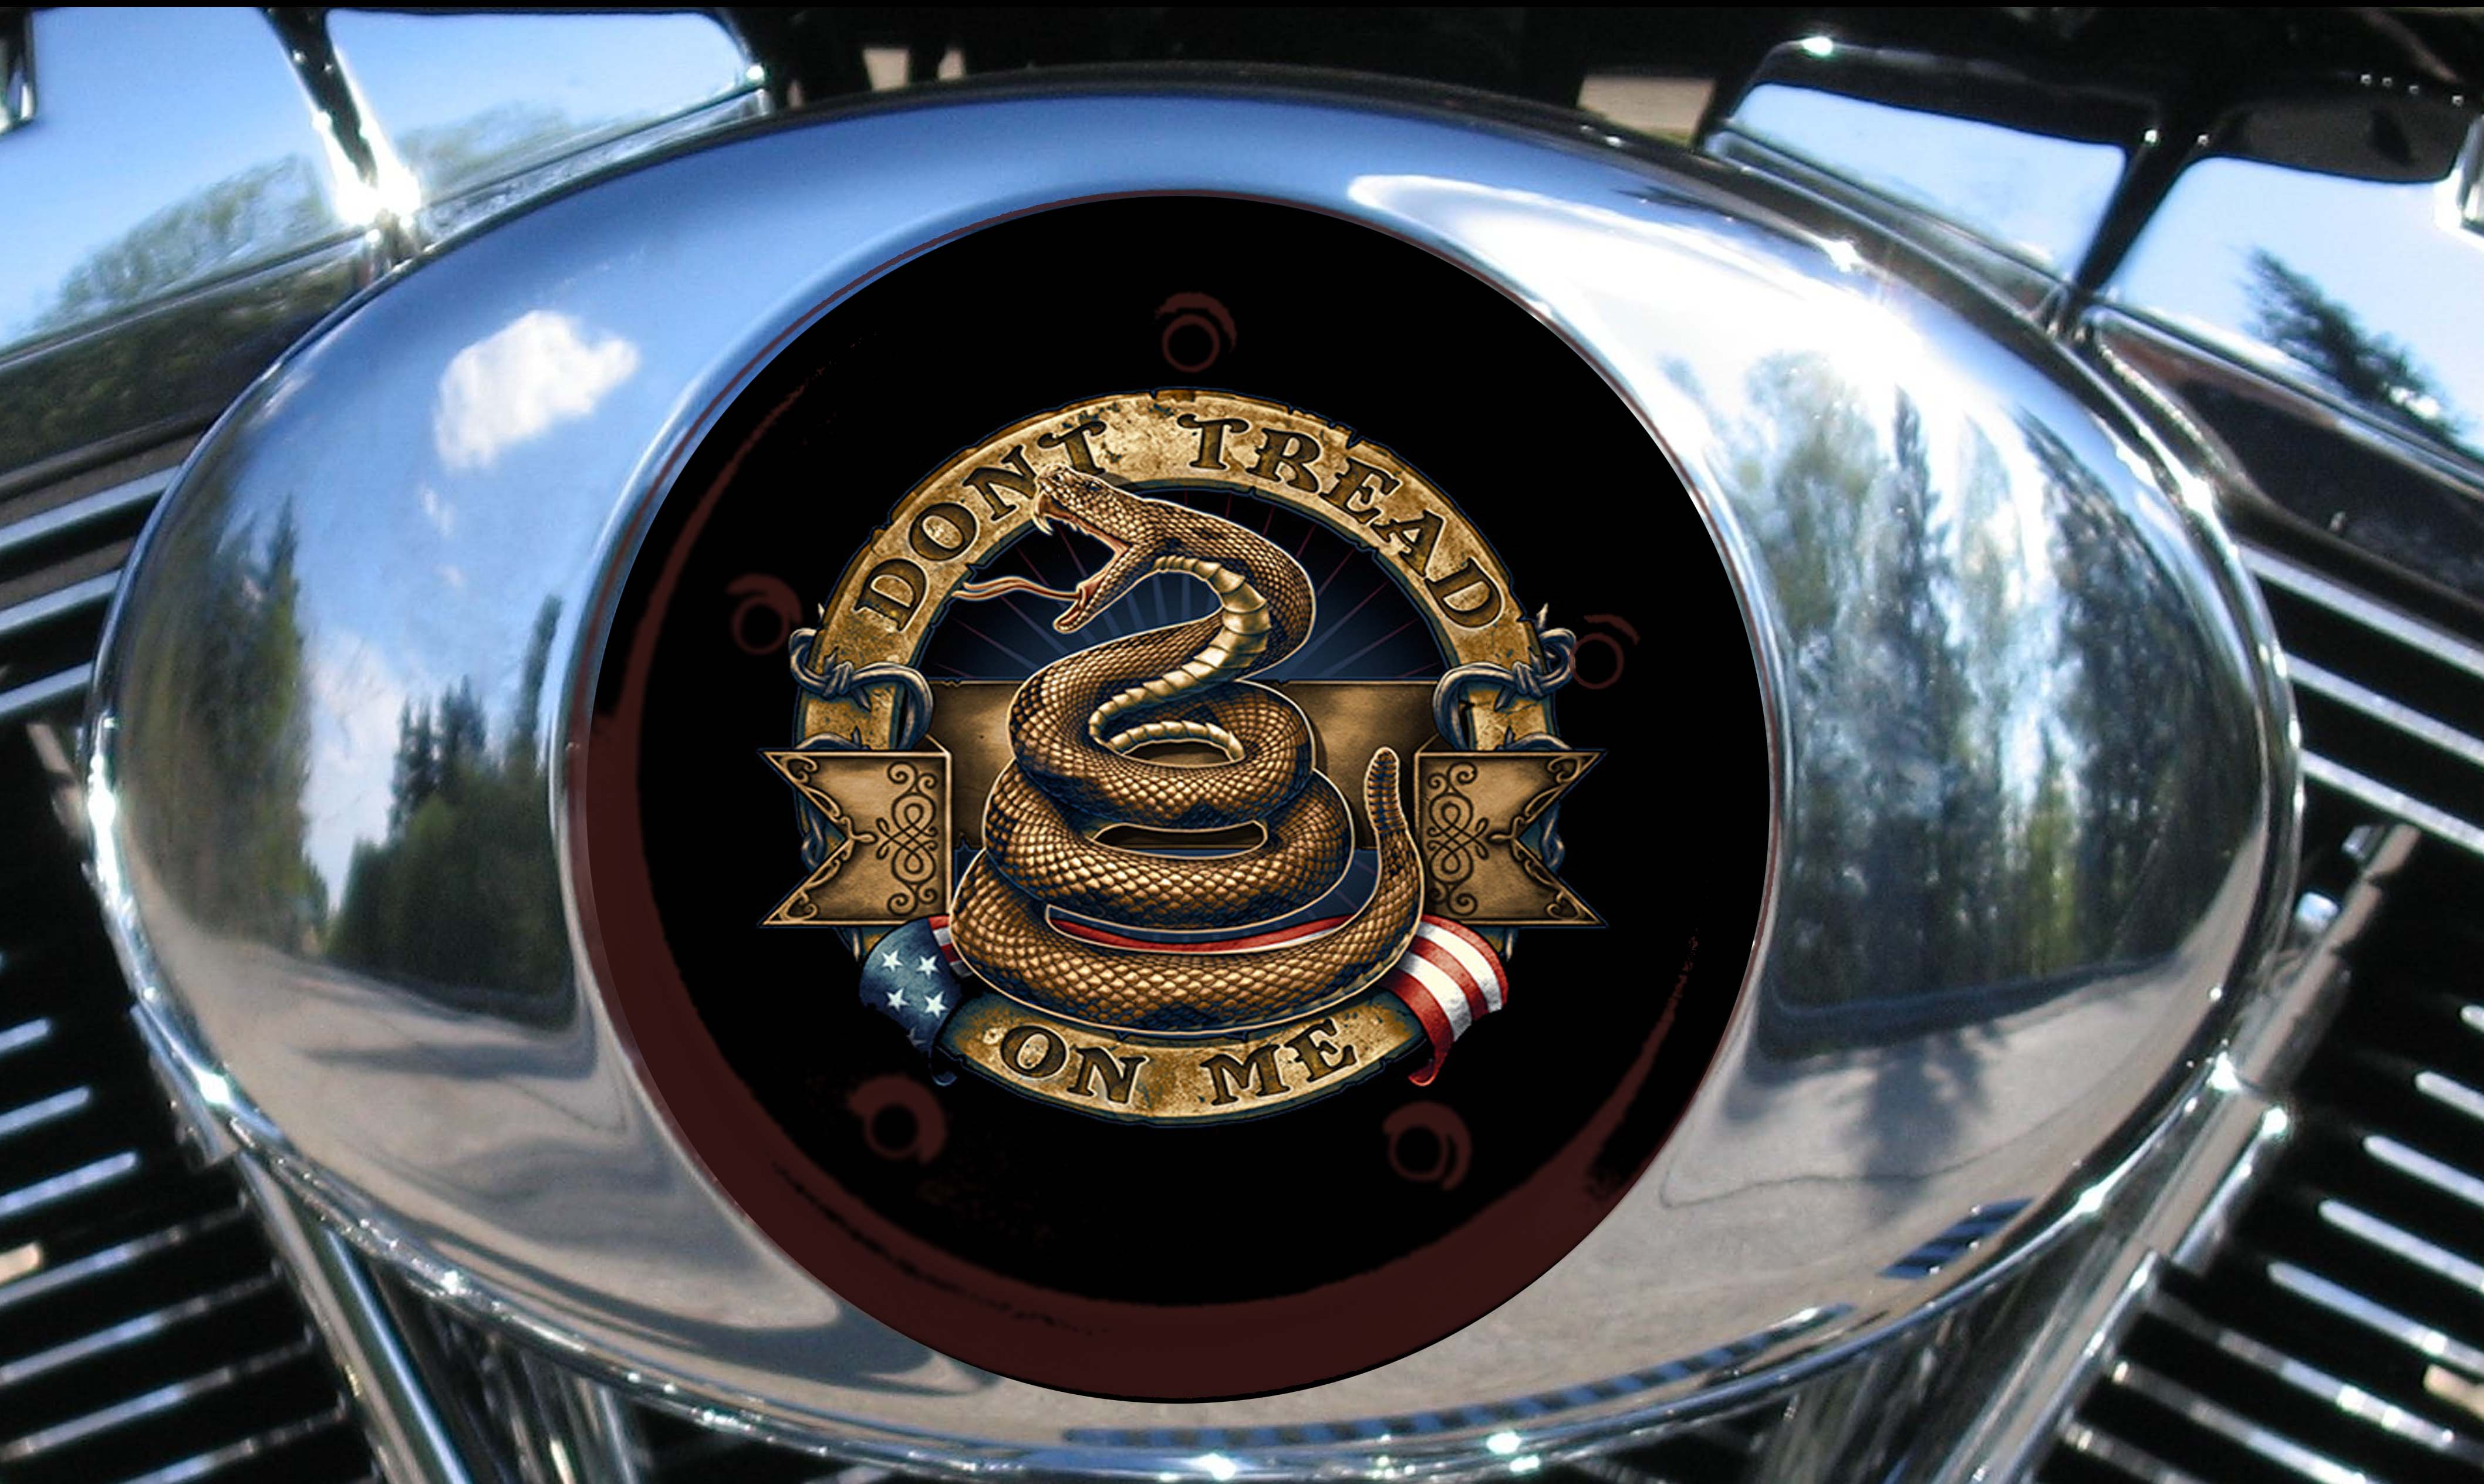 Harley Air Cleaner Cover - DON'T TREAD ON ME